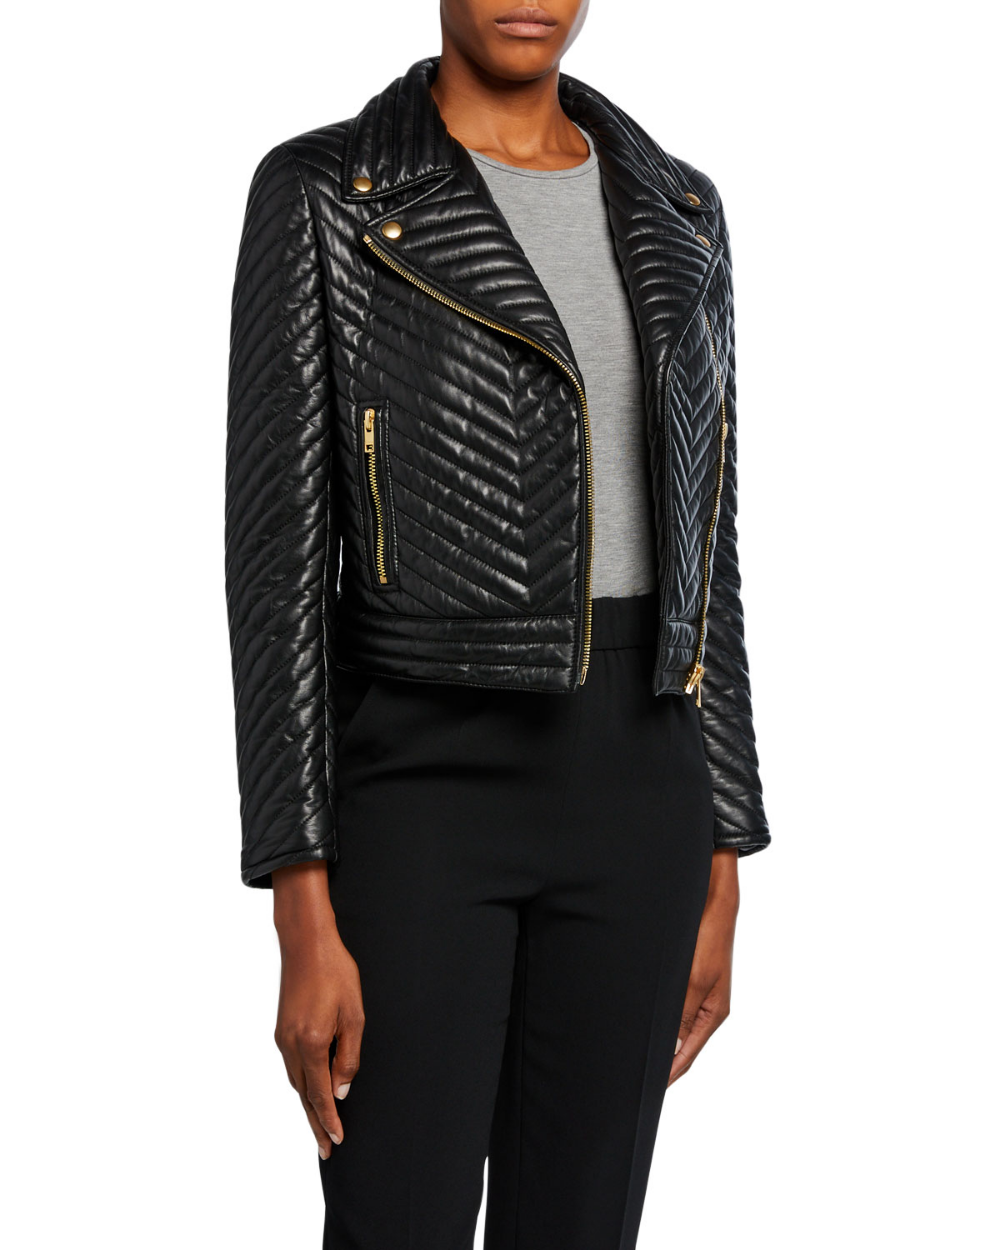 Escada Sport Limana Quilted Leather Jacket Leather Jacket Jackets Escada Sport [ 1250 x 1000 Pixel ]